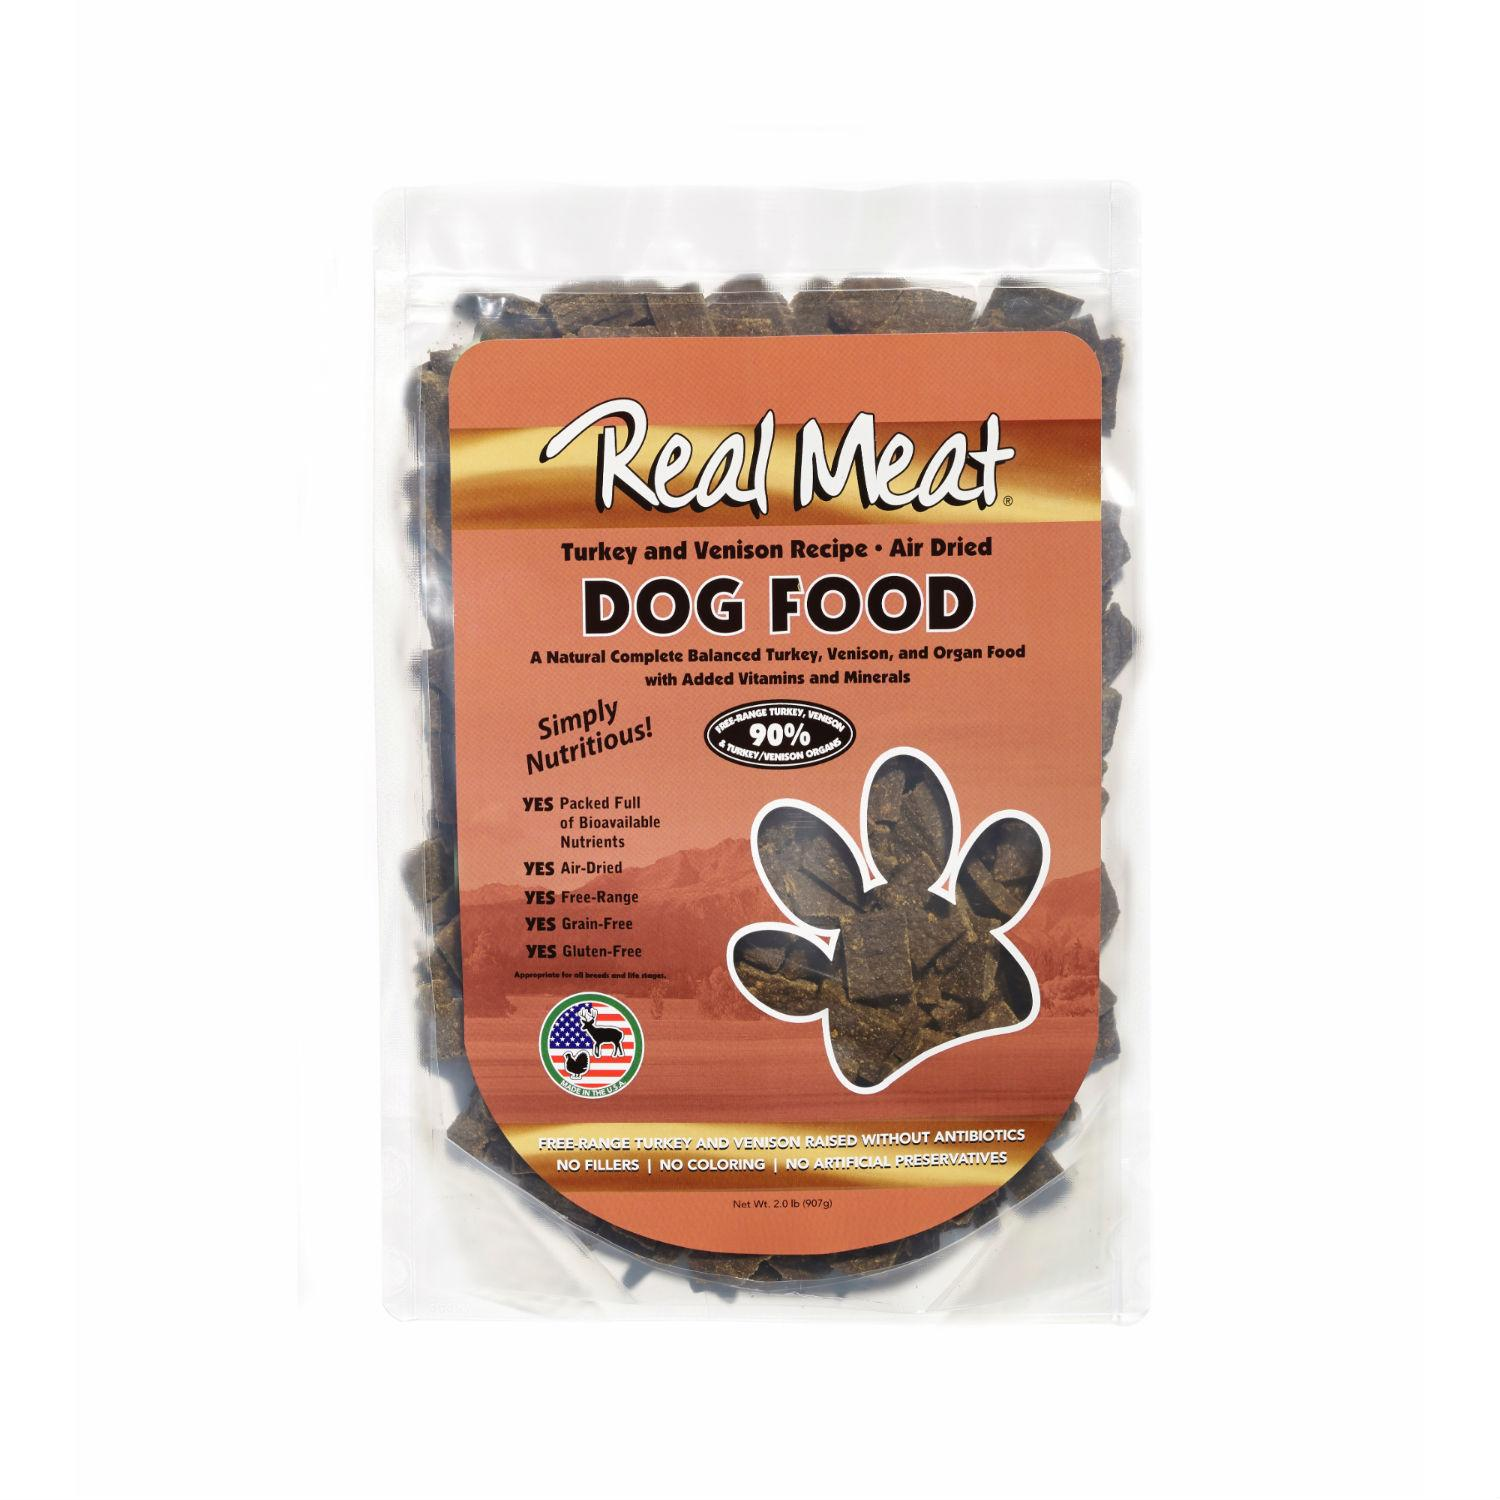 Real Meat Turkey and Venison Dog Food